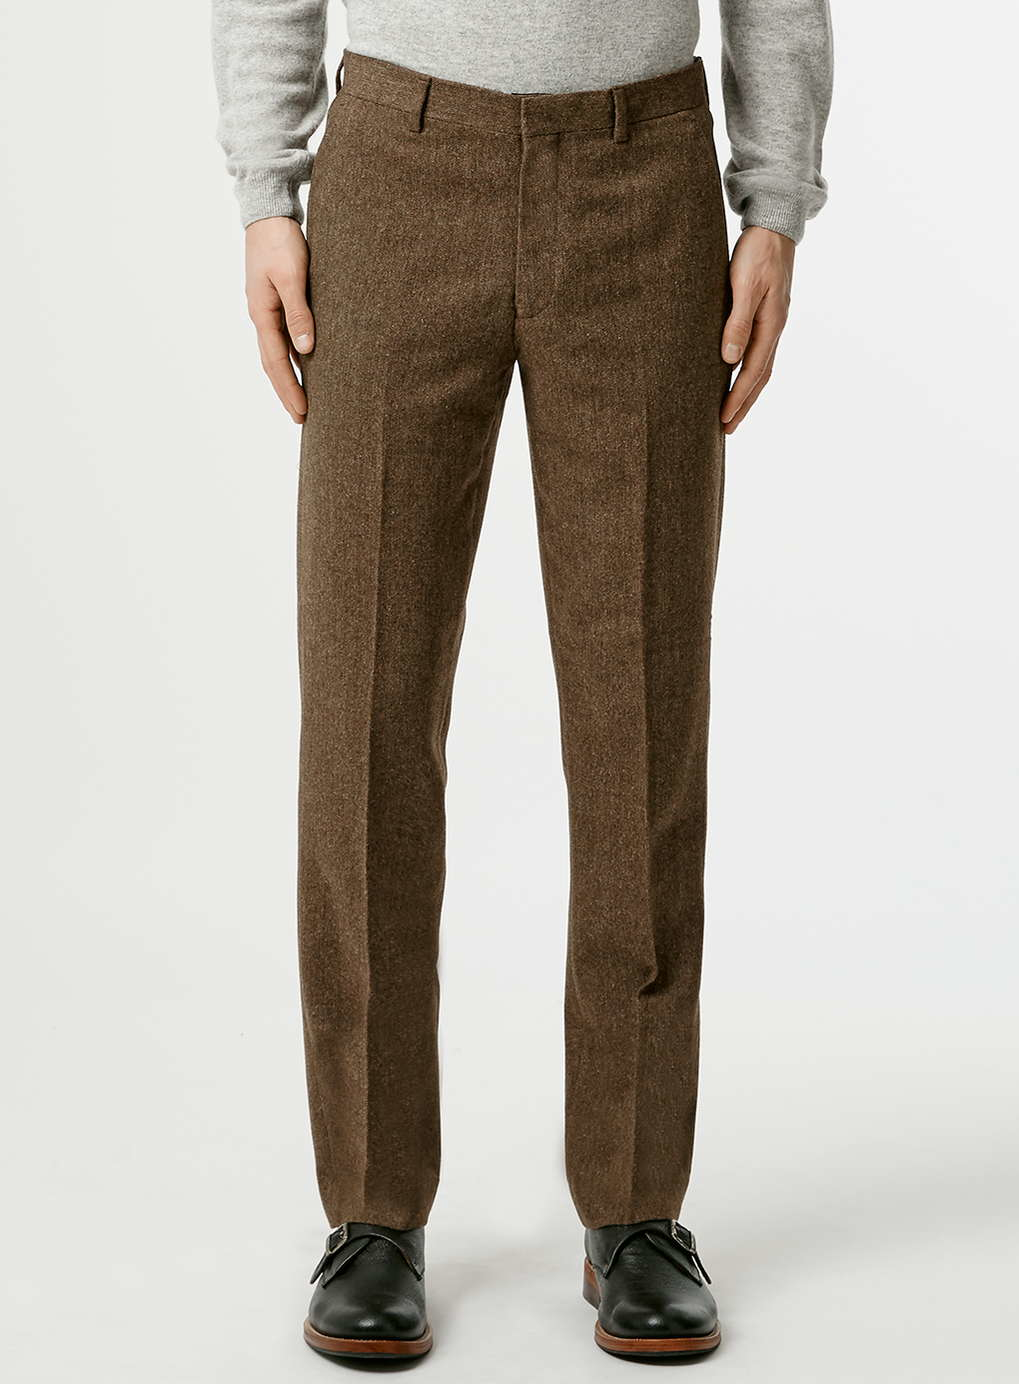 Our famous collection of men's wool pants, perfect for any outdoor adventure.